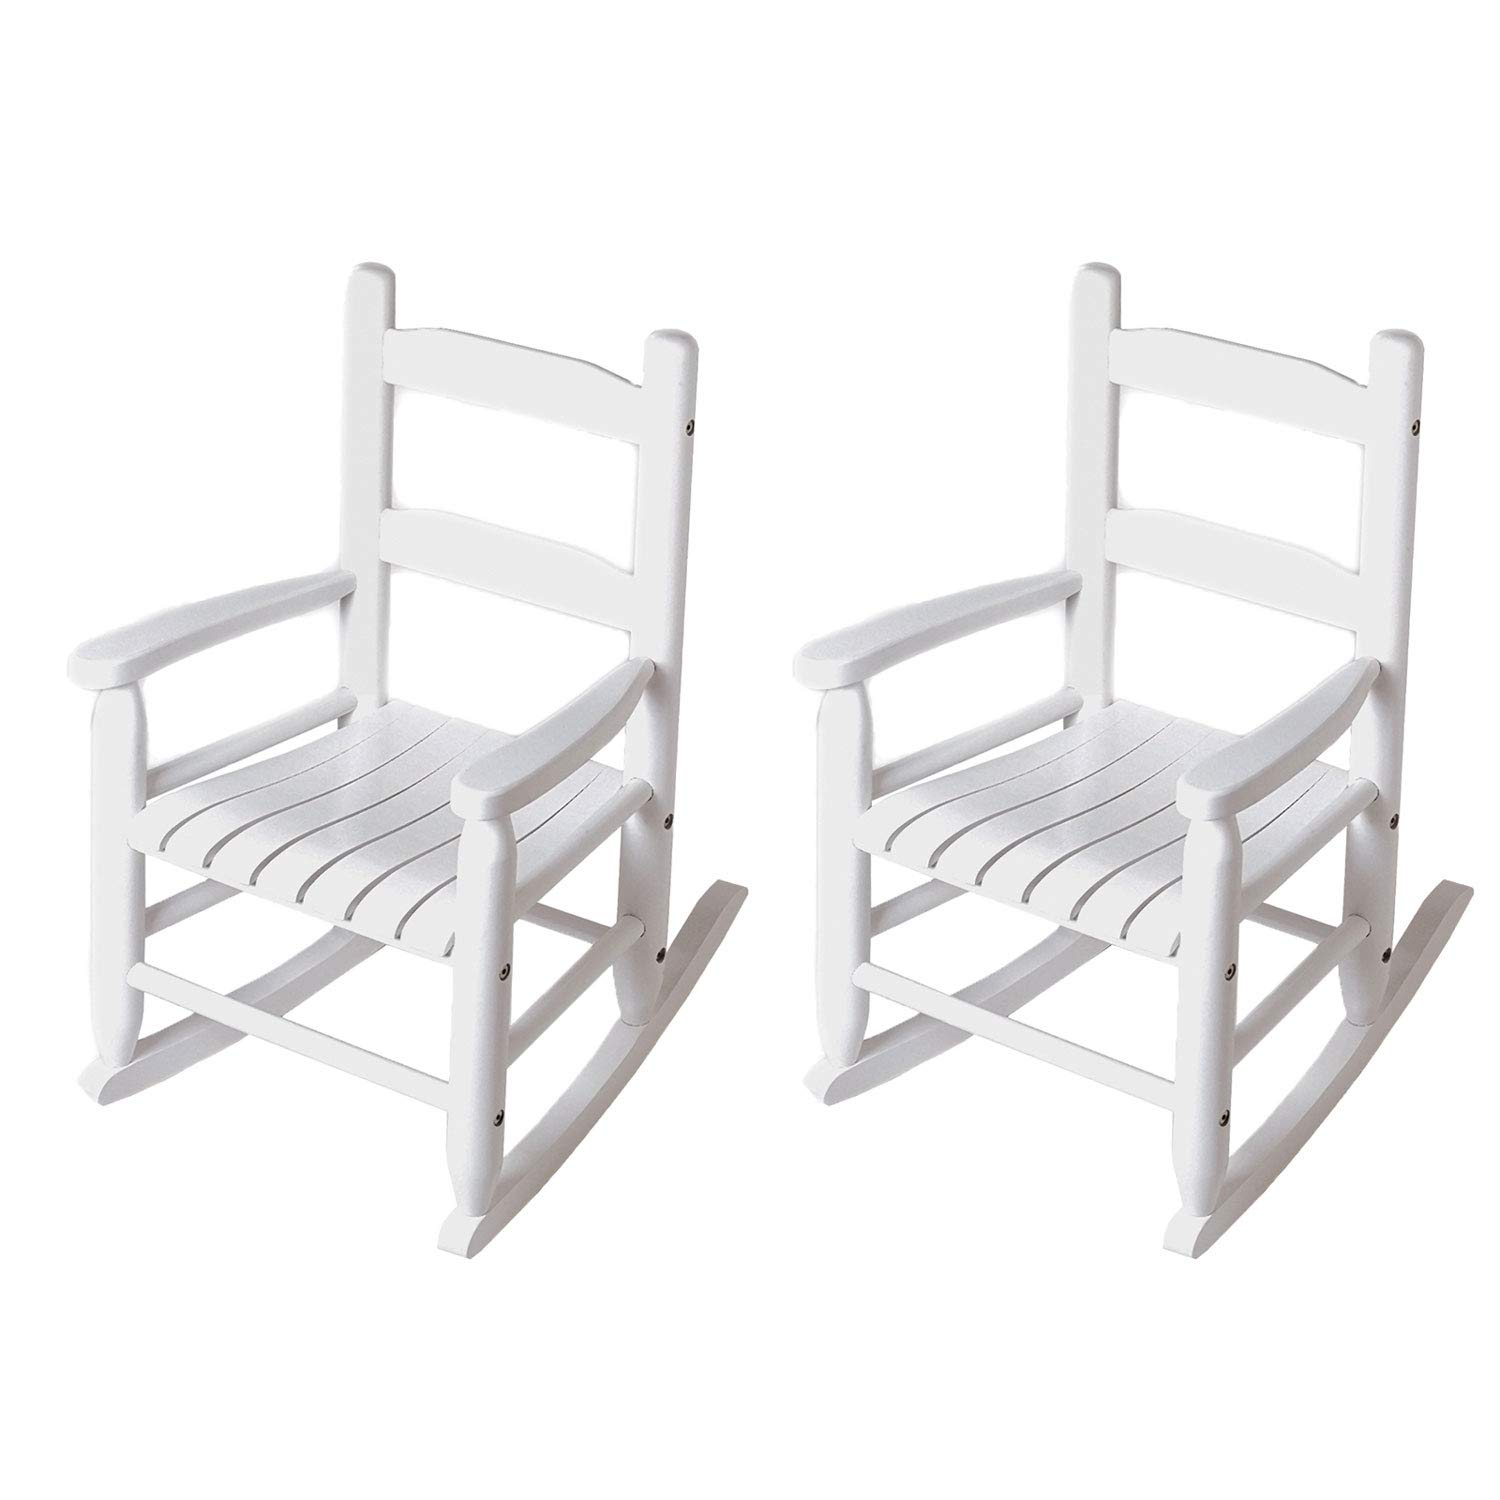 Lipper Child's Eco Friendly Wooden Furniture Rocking Chair, White (2 Pack) by Lipper International